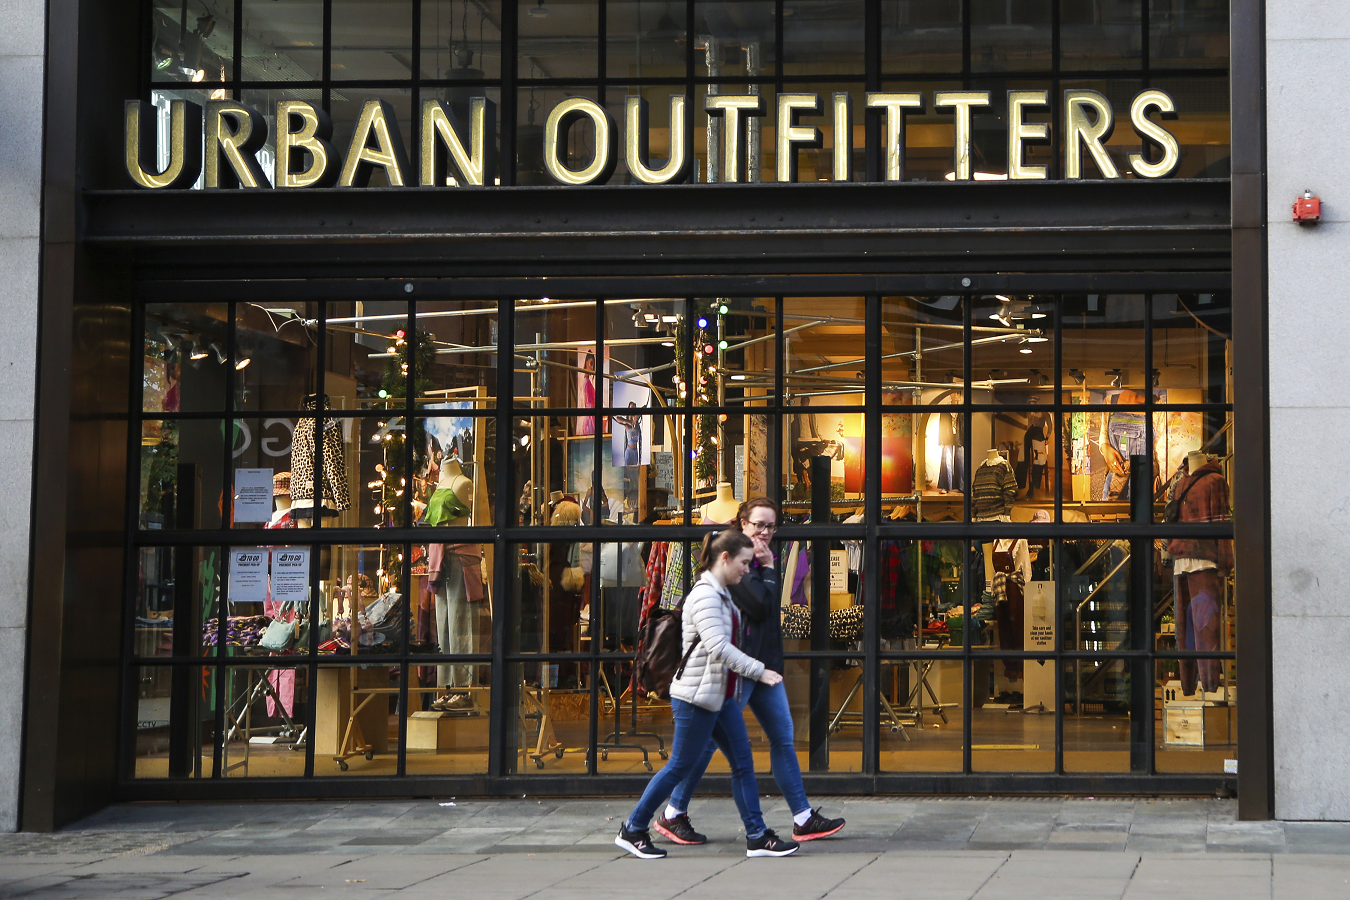 Urban Outfitters, which operates under various banners including namesake Urban Outfitters, Anthropologie, Free People, BHLDN, Terrain and Nuuly, appears to have fueled its record earnings by reducing one of the biggest thorns in a retailer's side: markdowns.